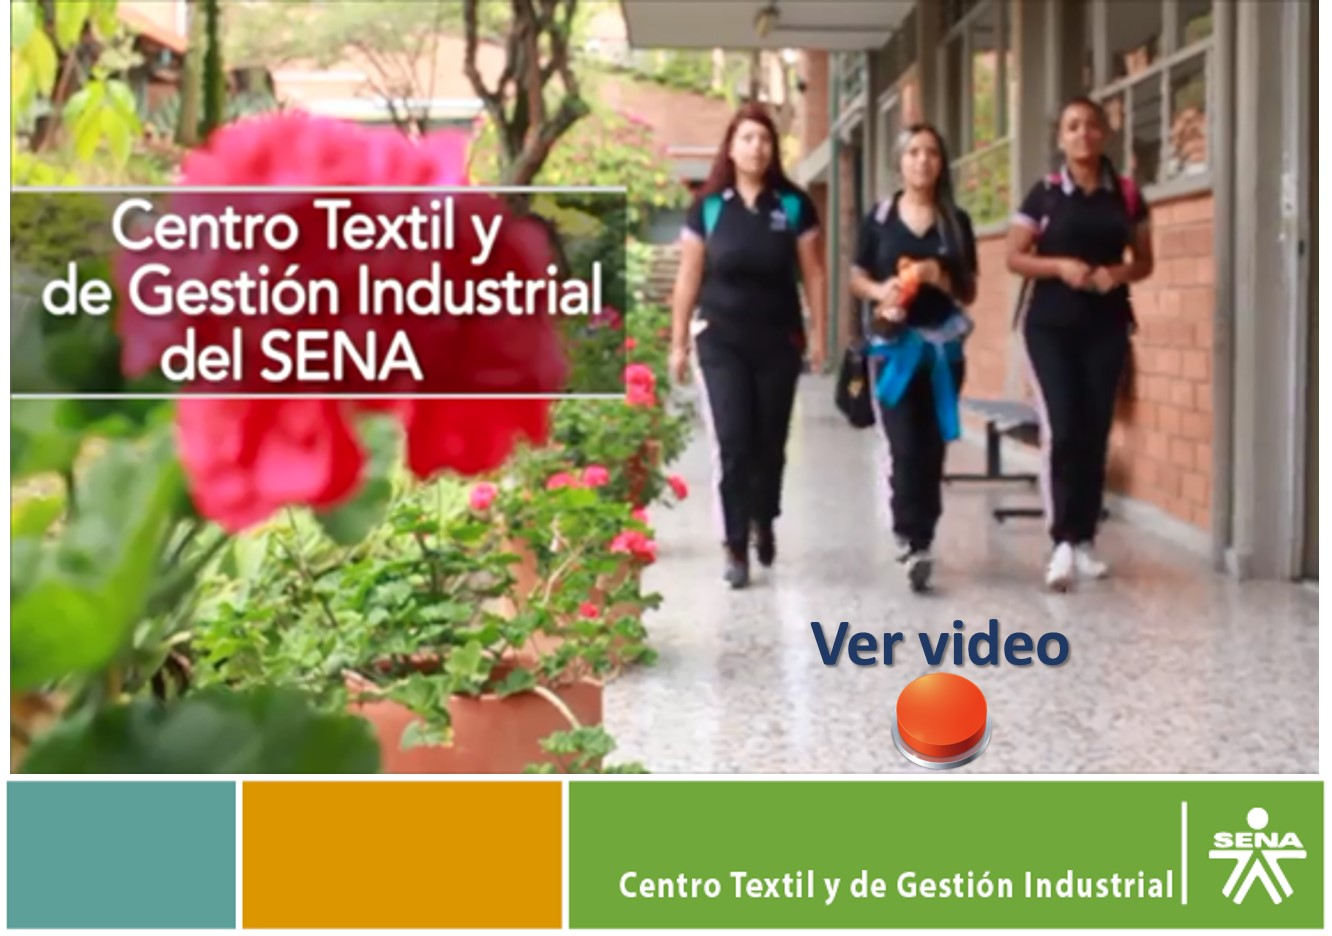 VIDEO CENTRO TEXTIL Y DE GESTIÓN INDUSTRIAL